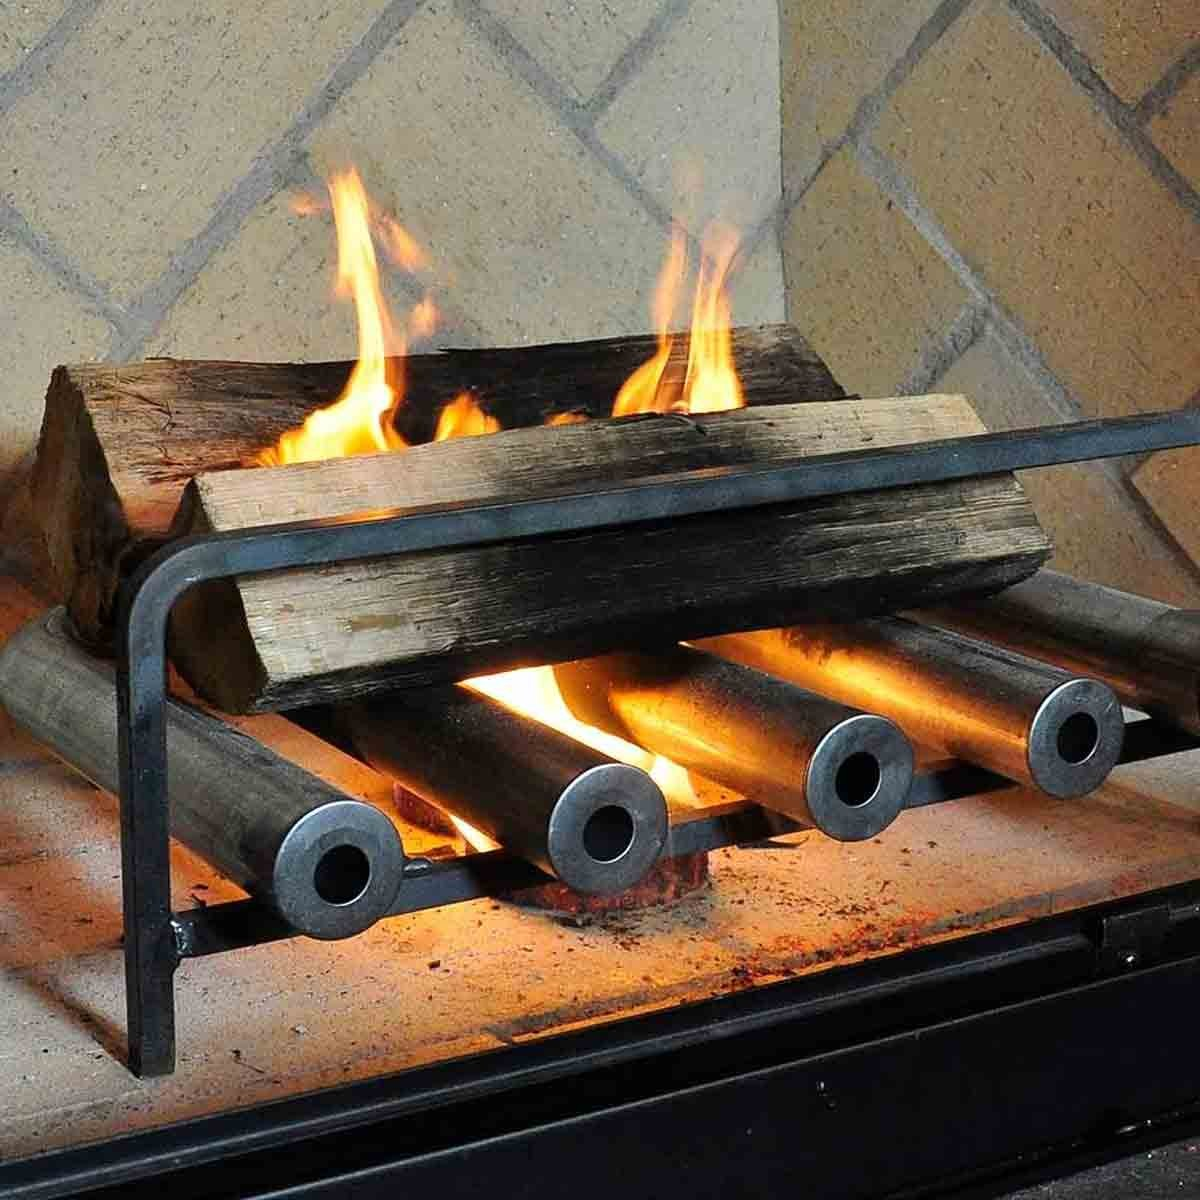 fireplace blower installation advanced chimney rh advancedchimney org vent free gas fireplace fan Fuego Fireplace Blowers and Fans